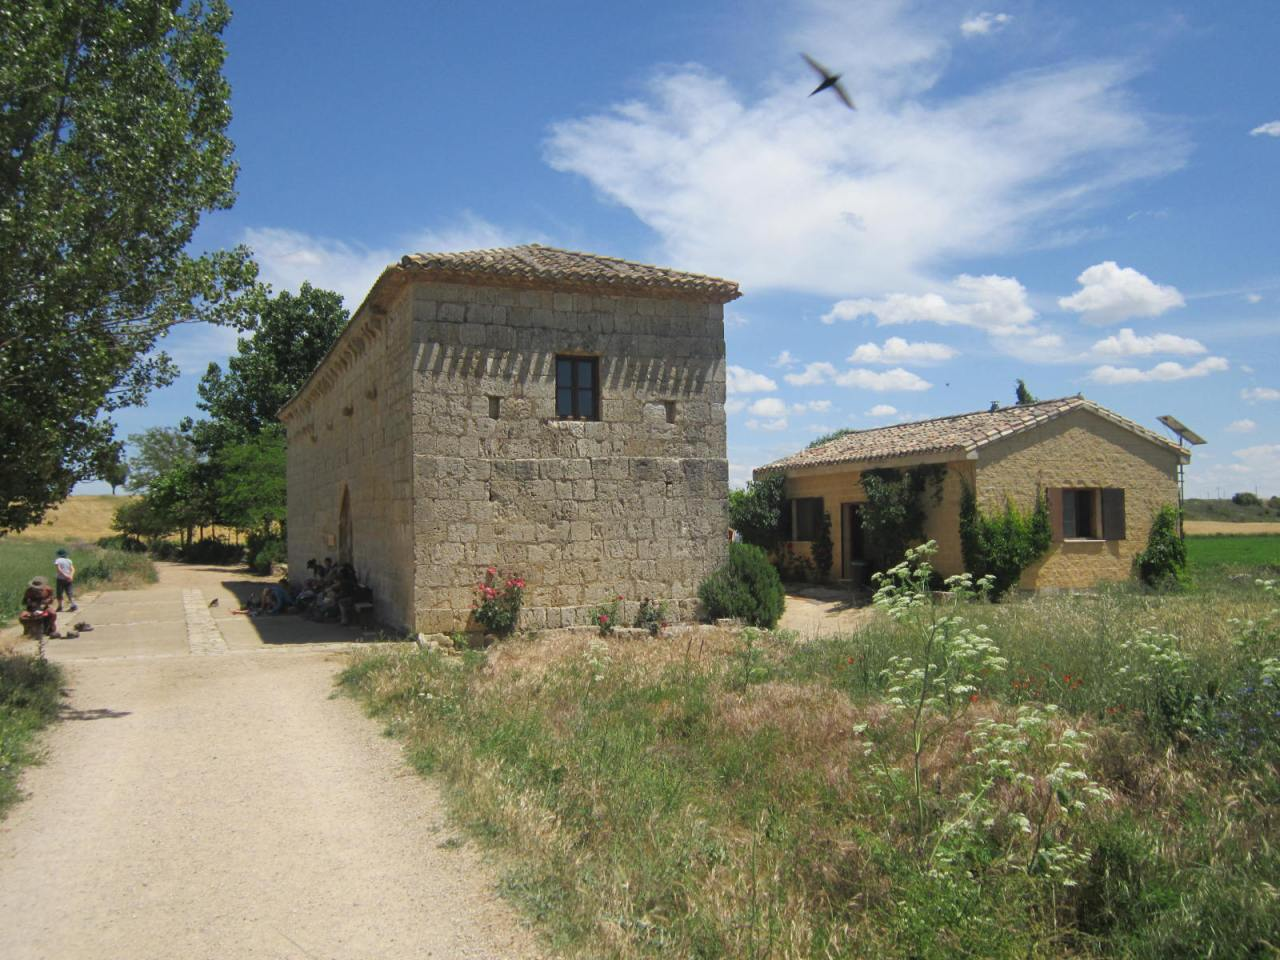 My top 5 donativo sleeps on the Camino Frances/FrenchWay